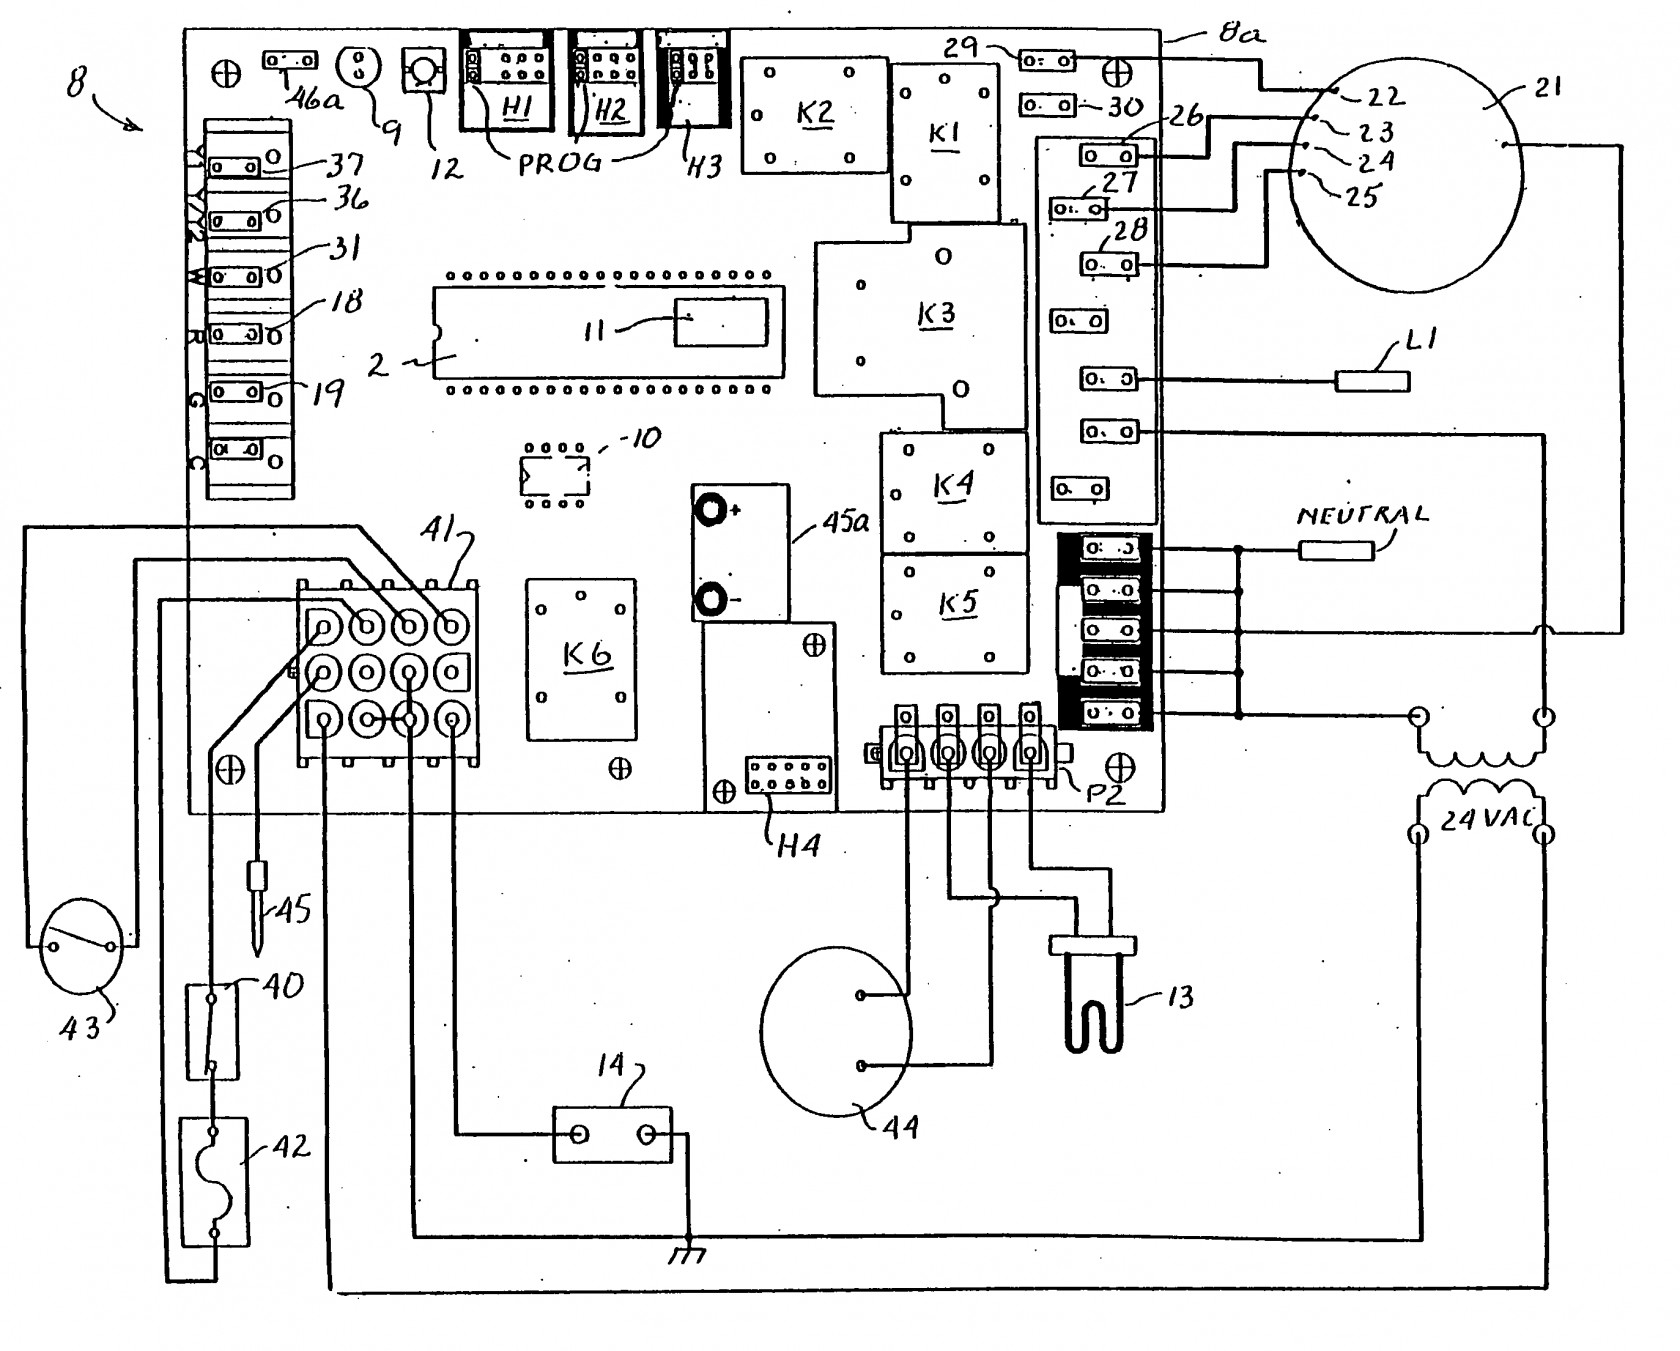 DIAGRAM] Oil Furnace Controller Wiring Diagram FULL Version HD Quality Wiring  Diagram - CABLEAMPERAGEPDF.BBALPES.FRWiring And Fuse Database